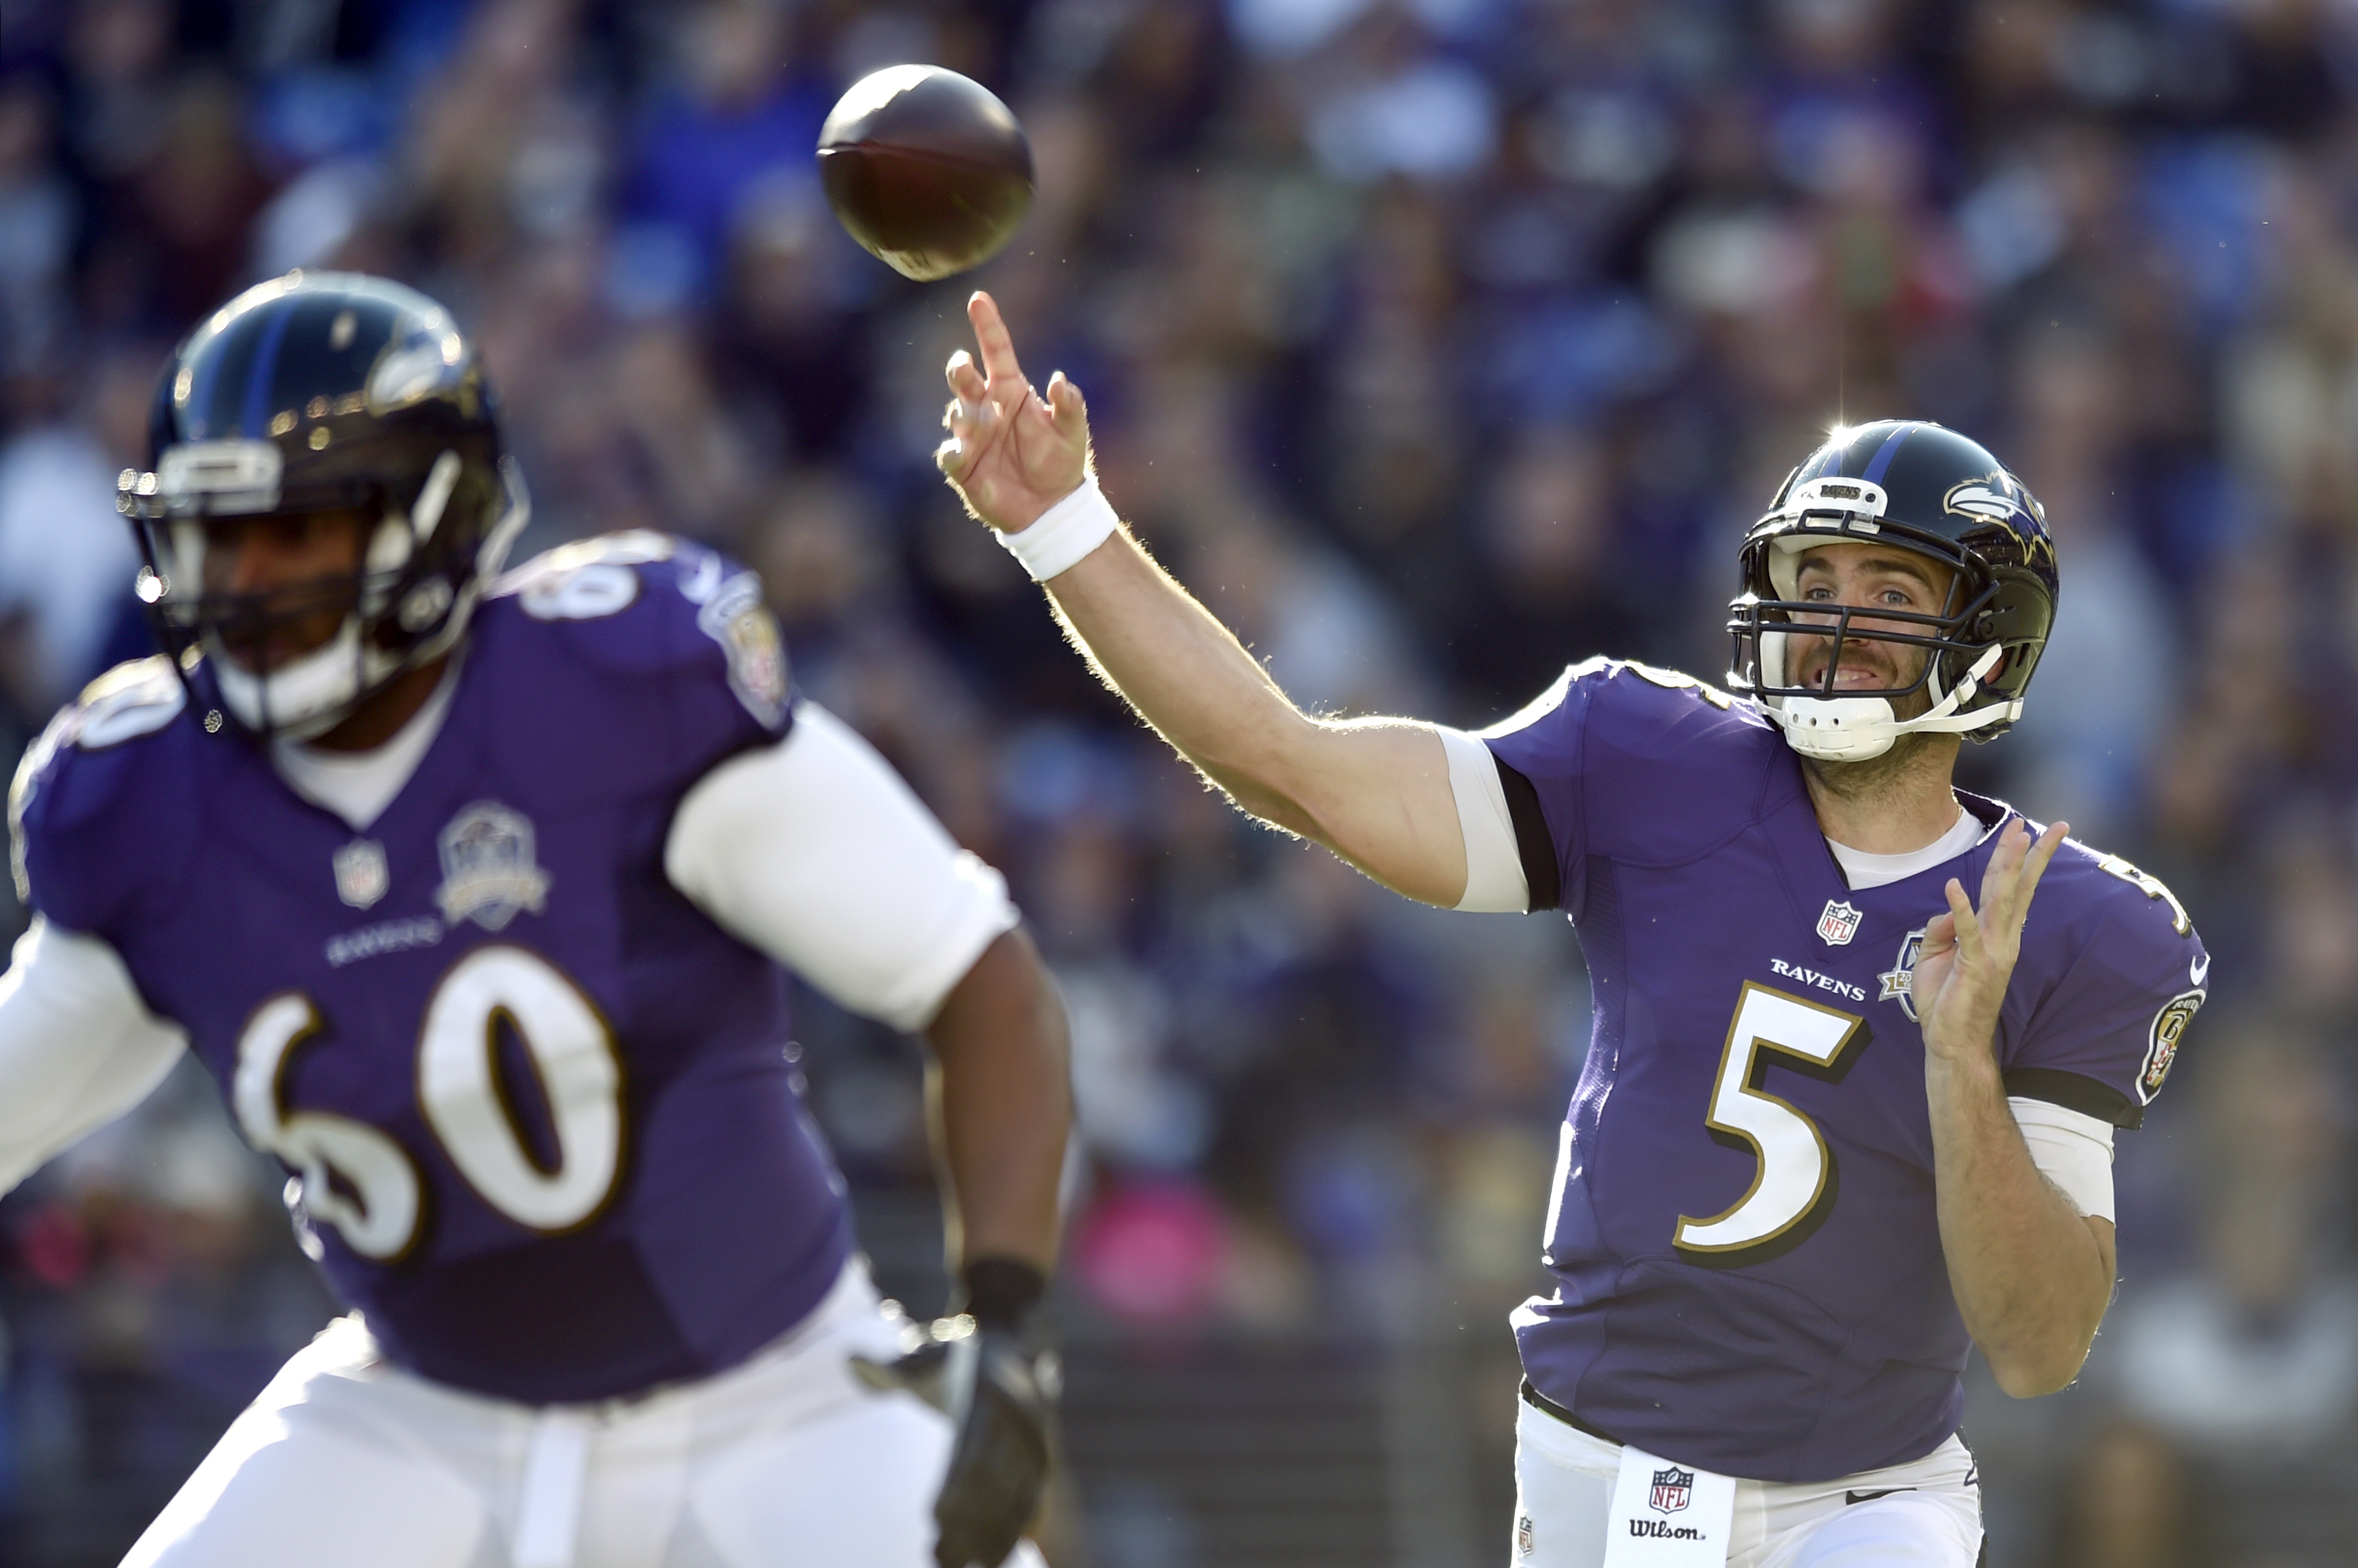 Baltimore Ravens quarterback Joe Flacco (5) throws to a receiver as he is protected by tackle Eugene Monroe in the first half an NFL football game against the Jacksonville Jaguars, Sunday, Nov. 15, 2015, in Baltimore. (AP Photo/Gail Burton)